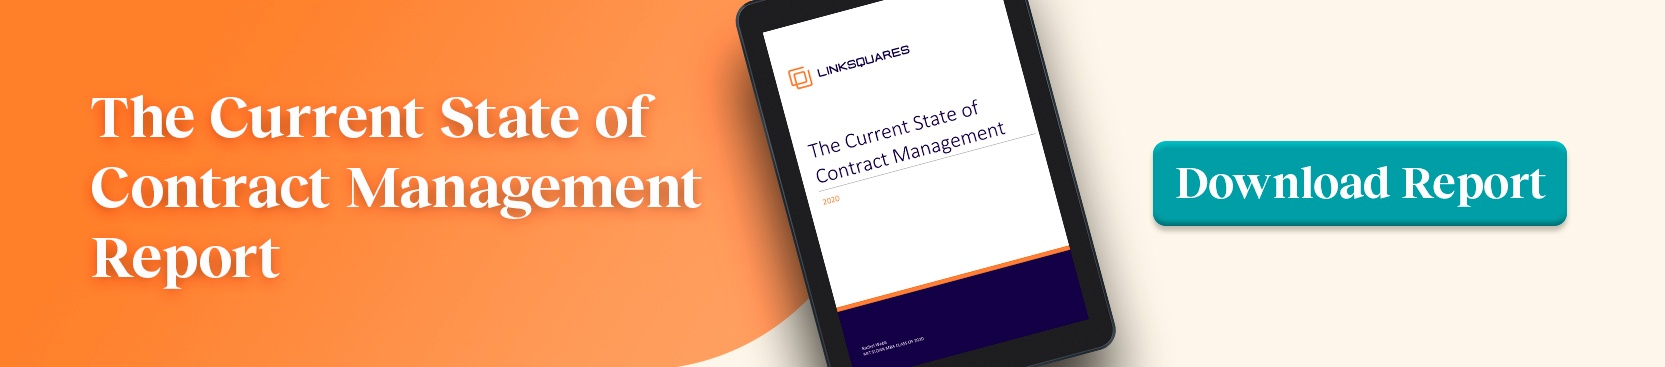 download report on the current state of contract management